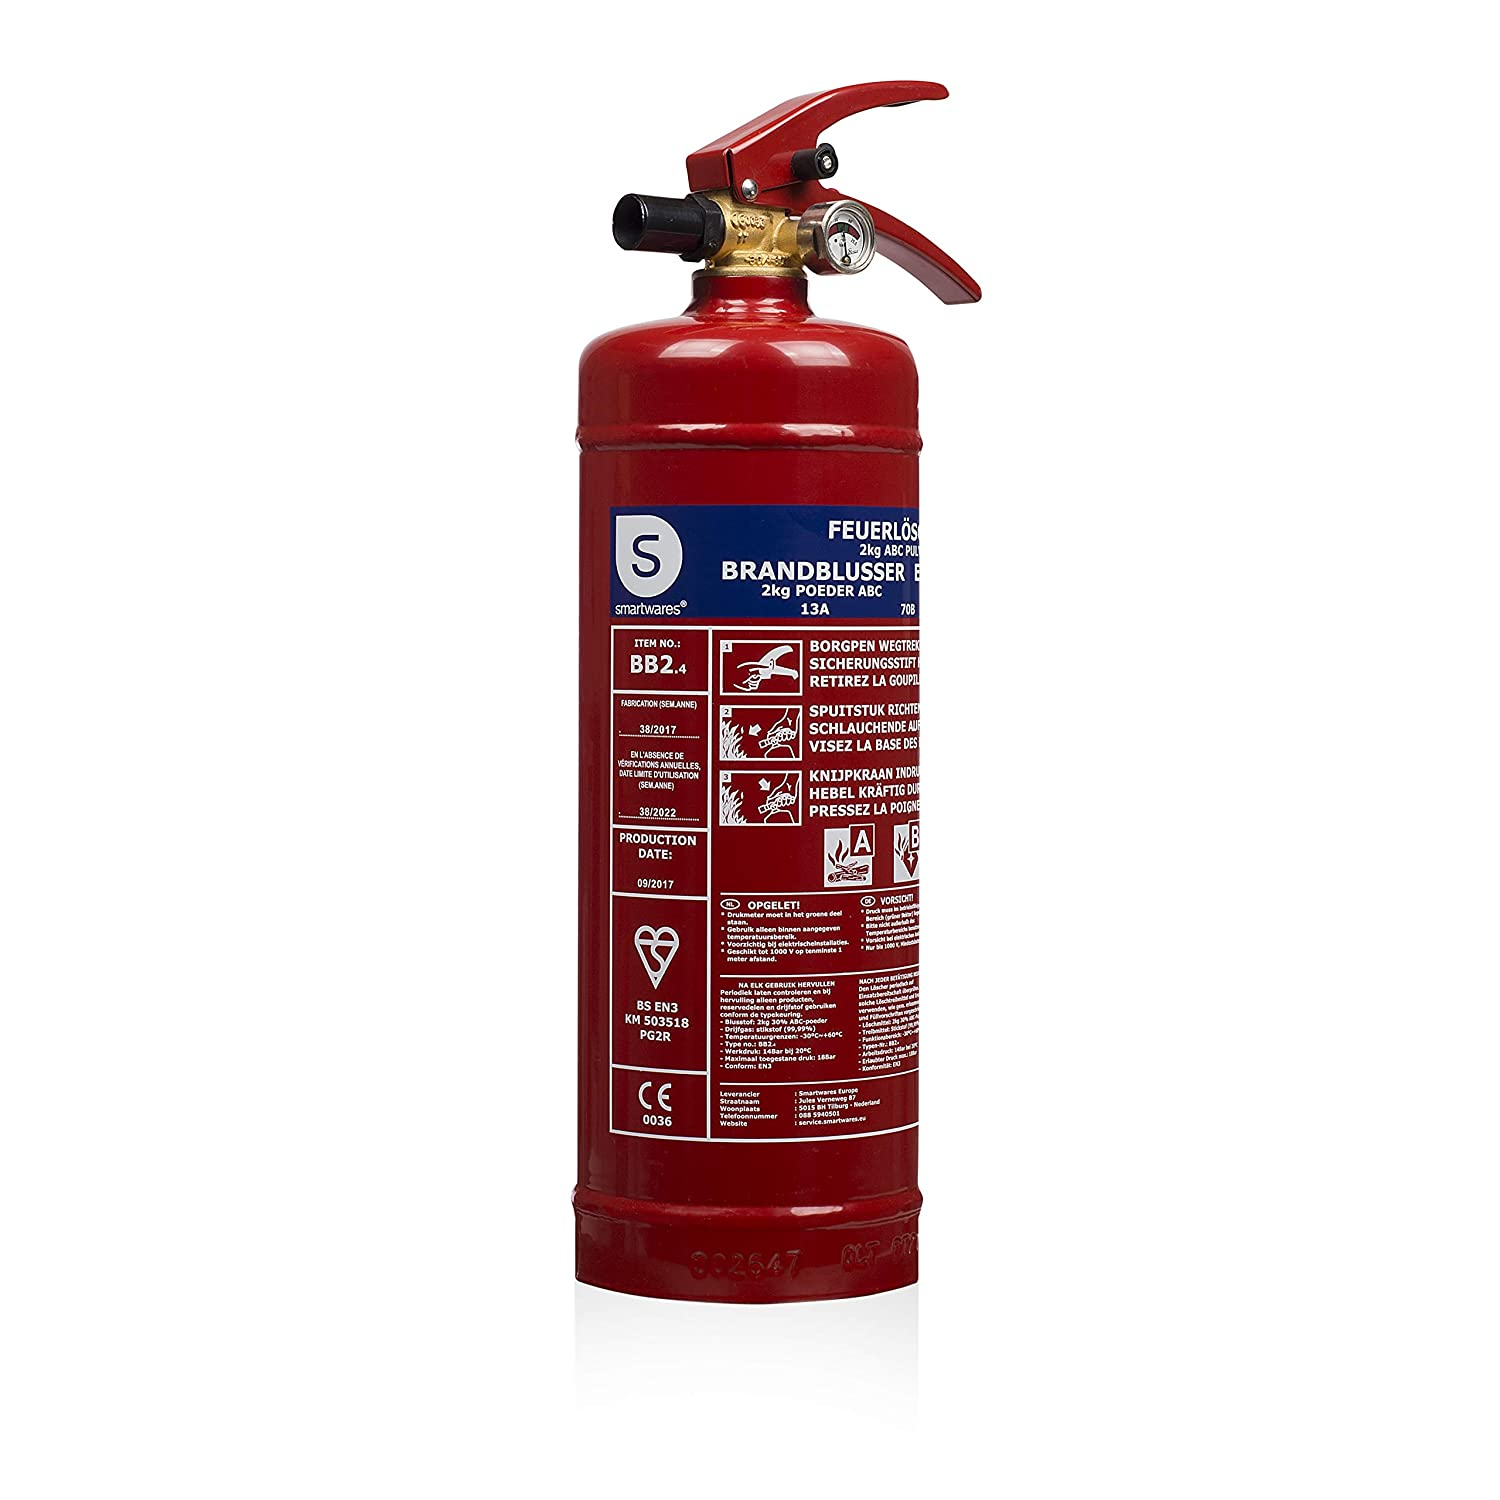 Smartwares 10.014.72 (BB6) Fire Extinguisher, Red, 6 kg